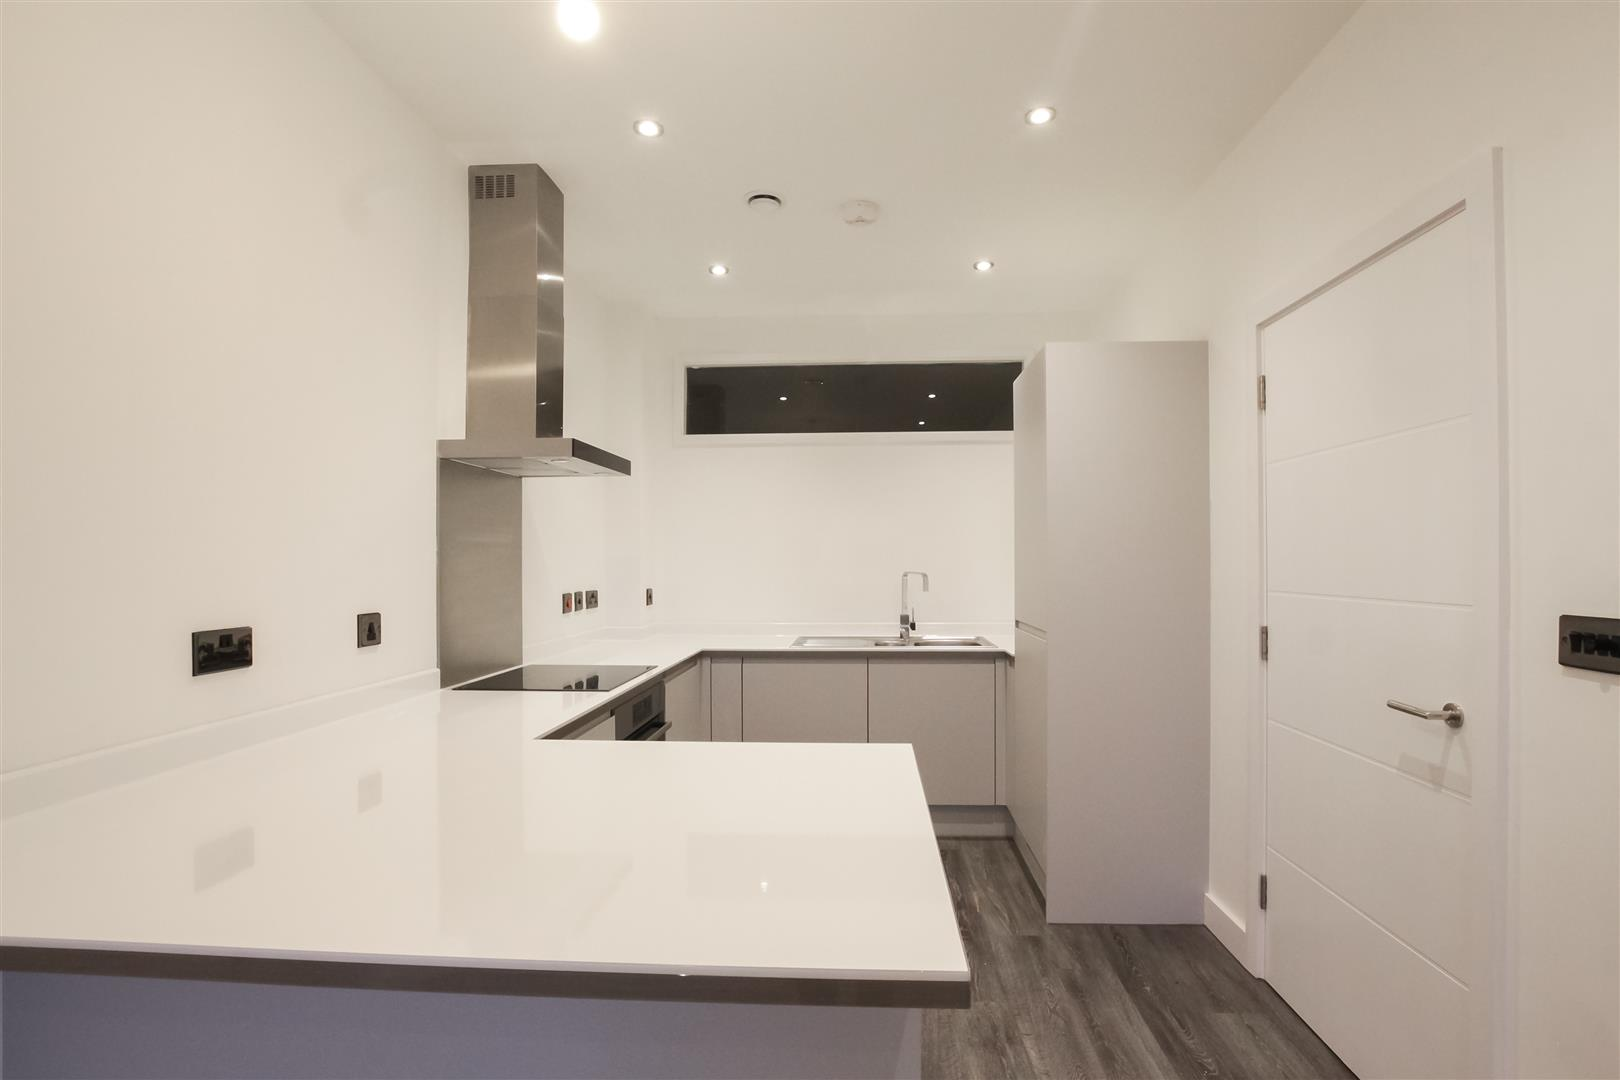 2 Bedroom Apartment For Sale - IMG_2181 copy.jpg